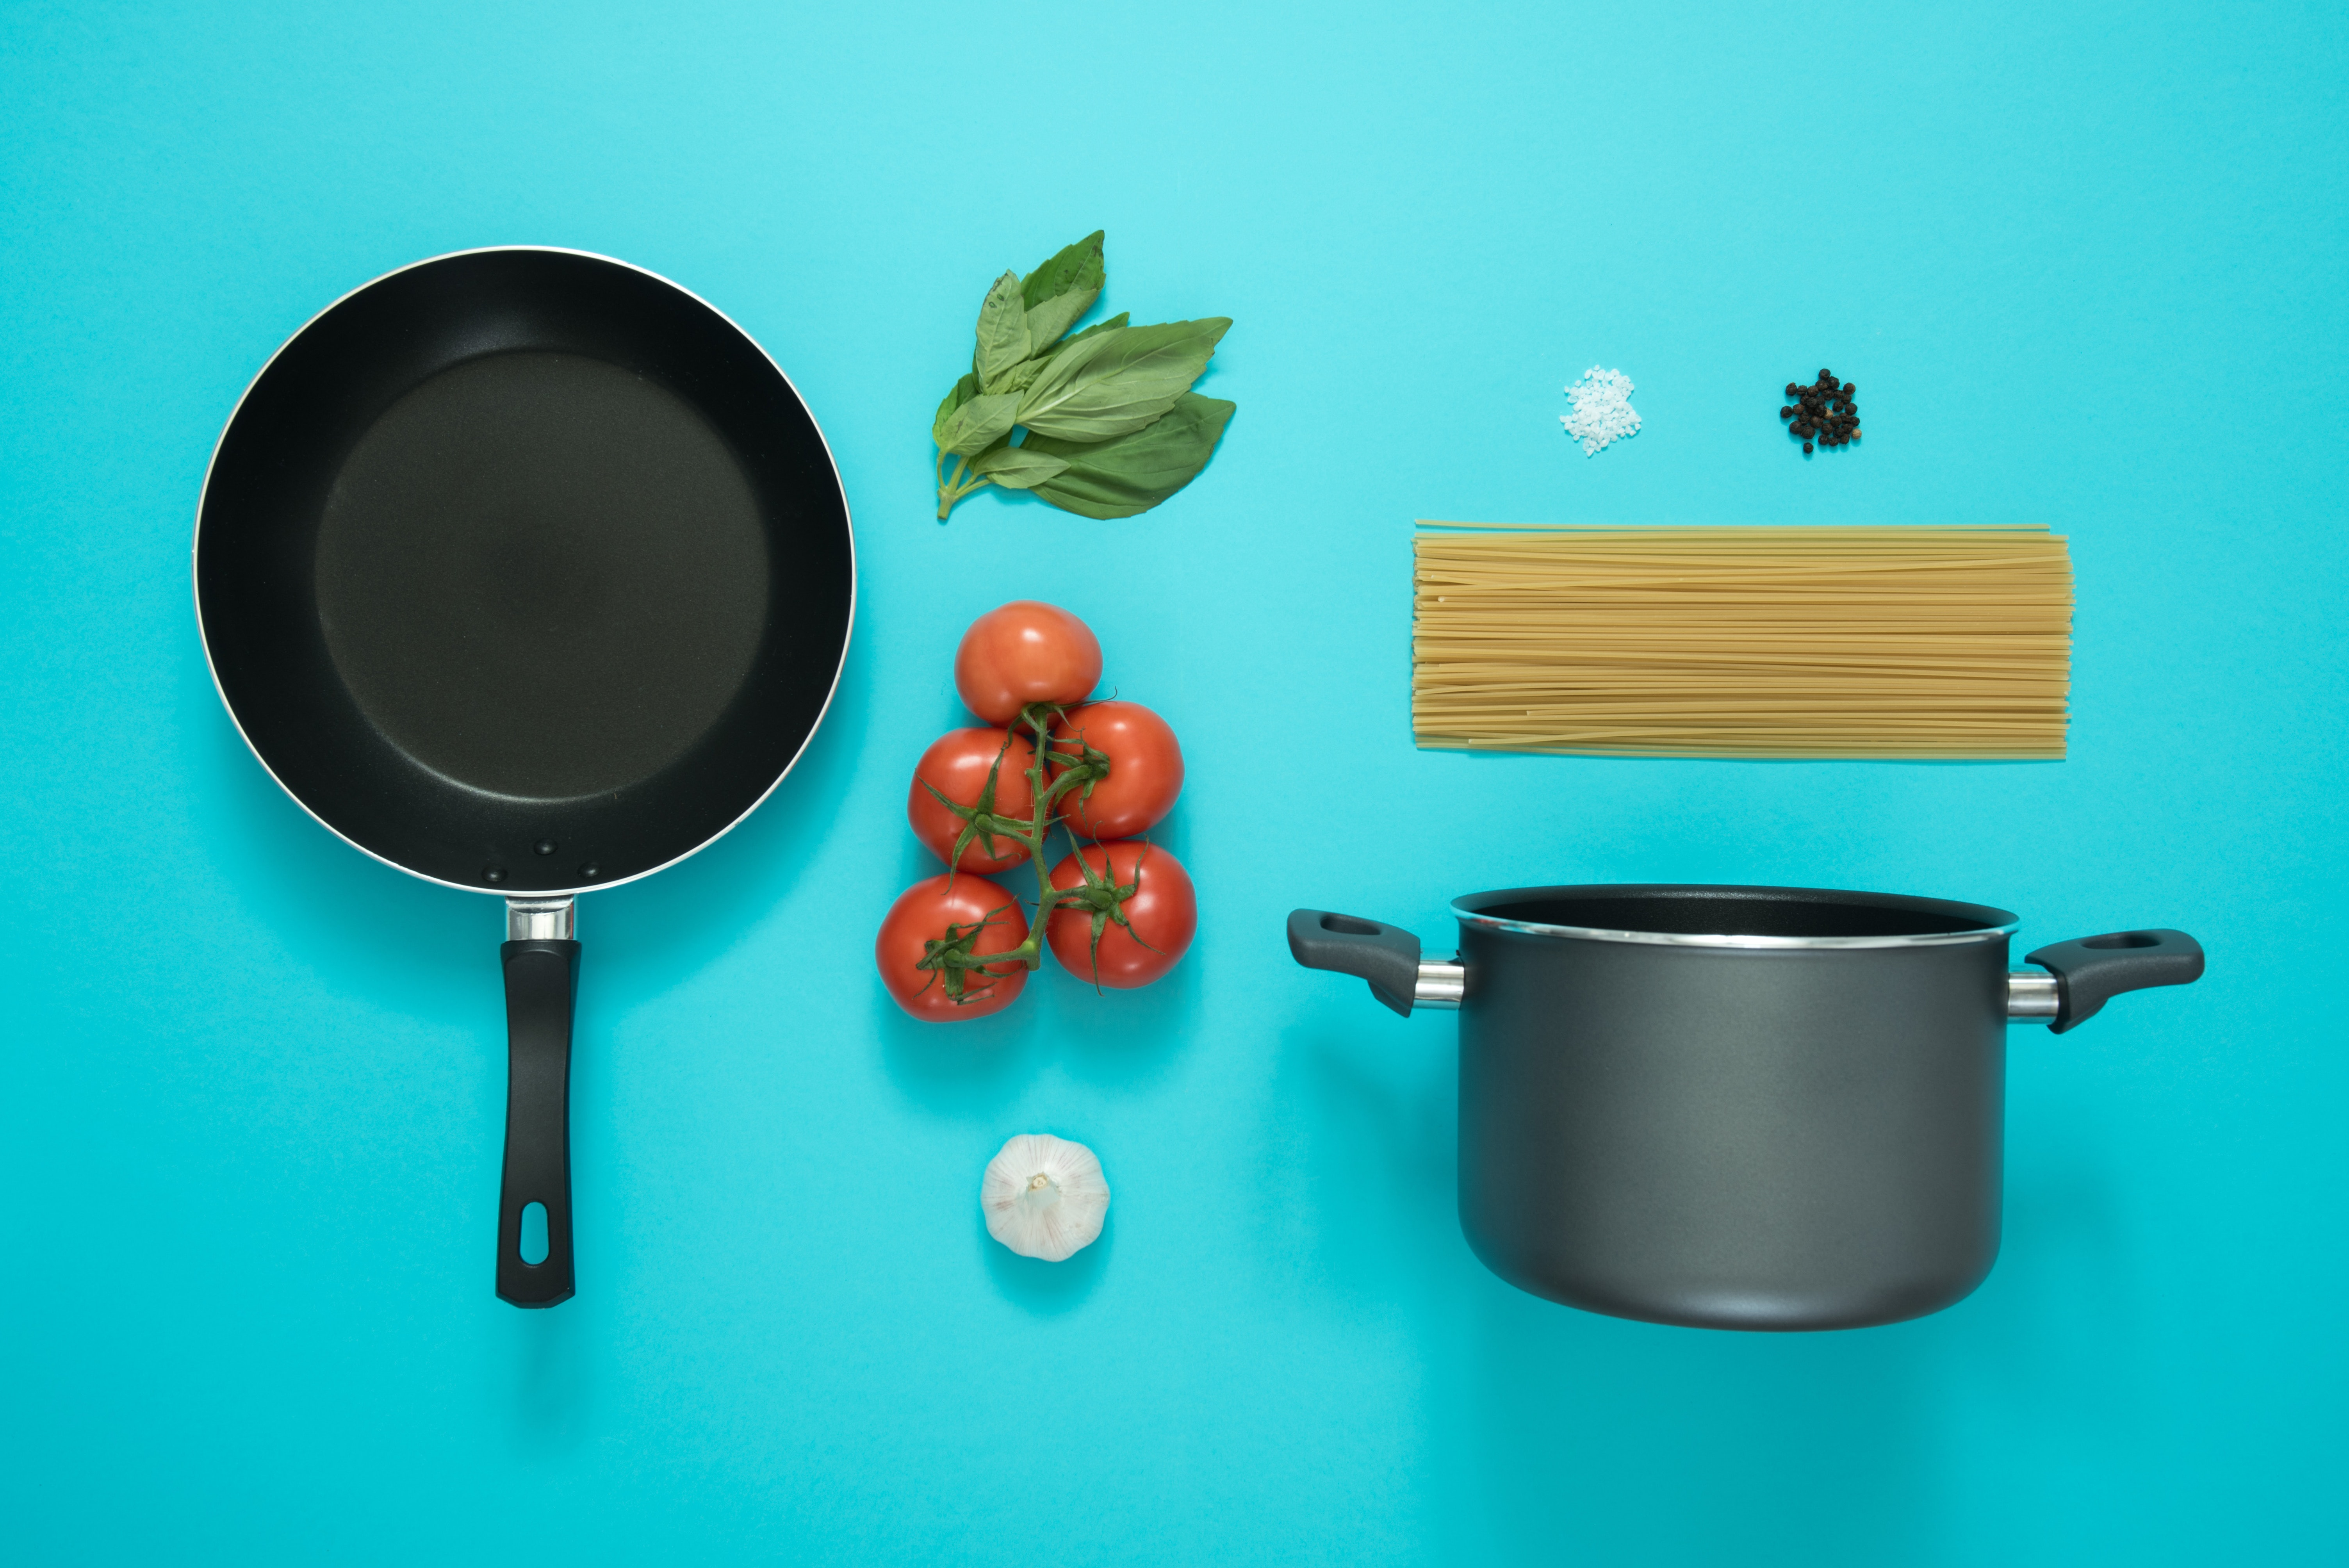 Home cooking station with a frying pan, pot, pasta, fresh herbs and tomato